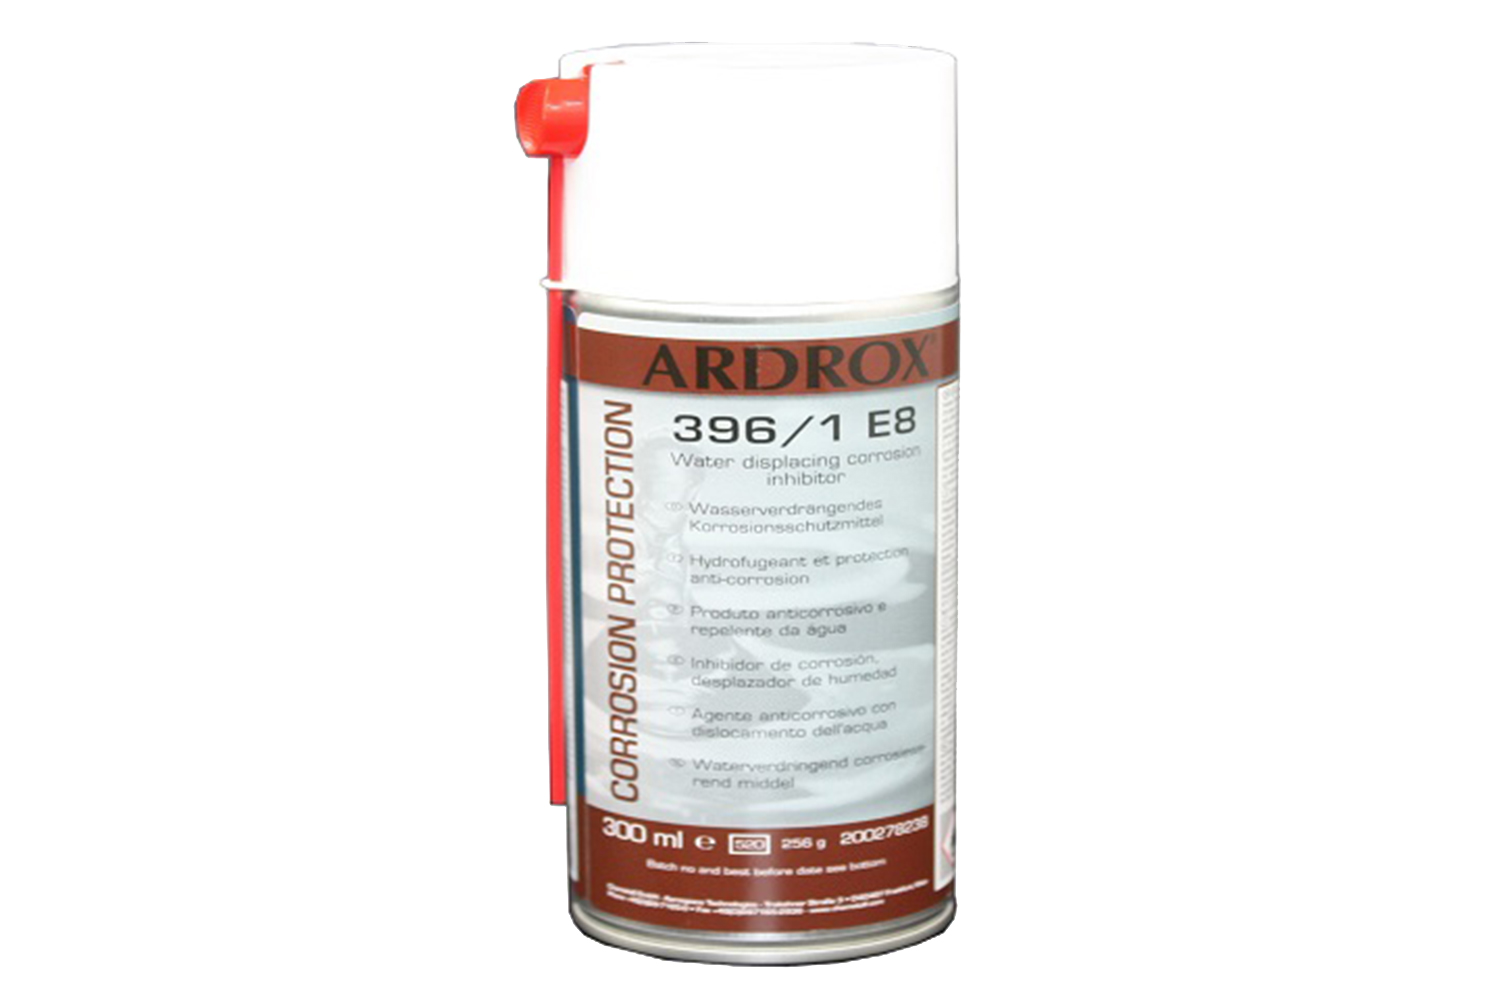 images/j2store/products/diffusees/40529-ARDROX-396-1-E8-300ML.jpg